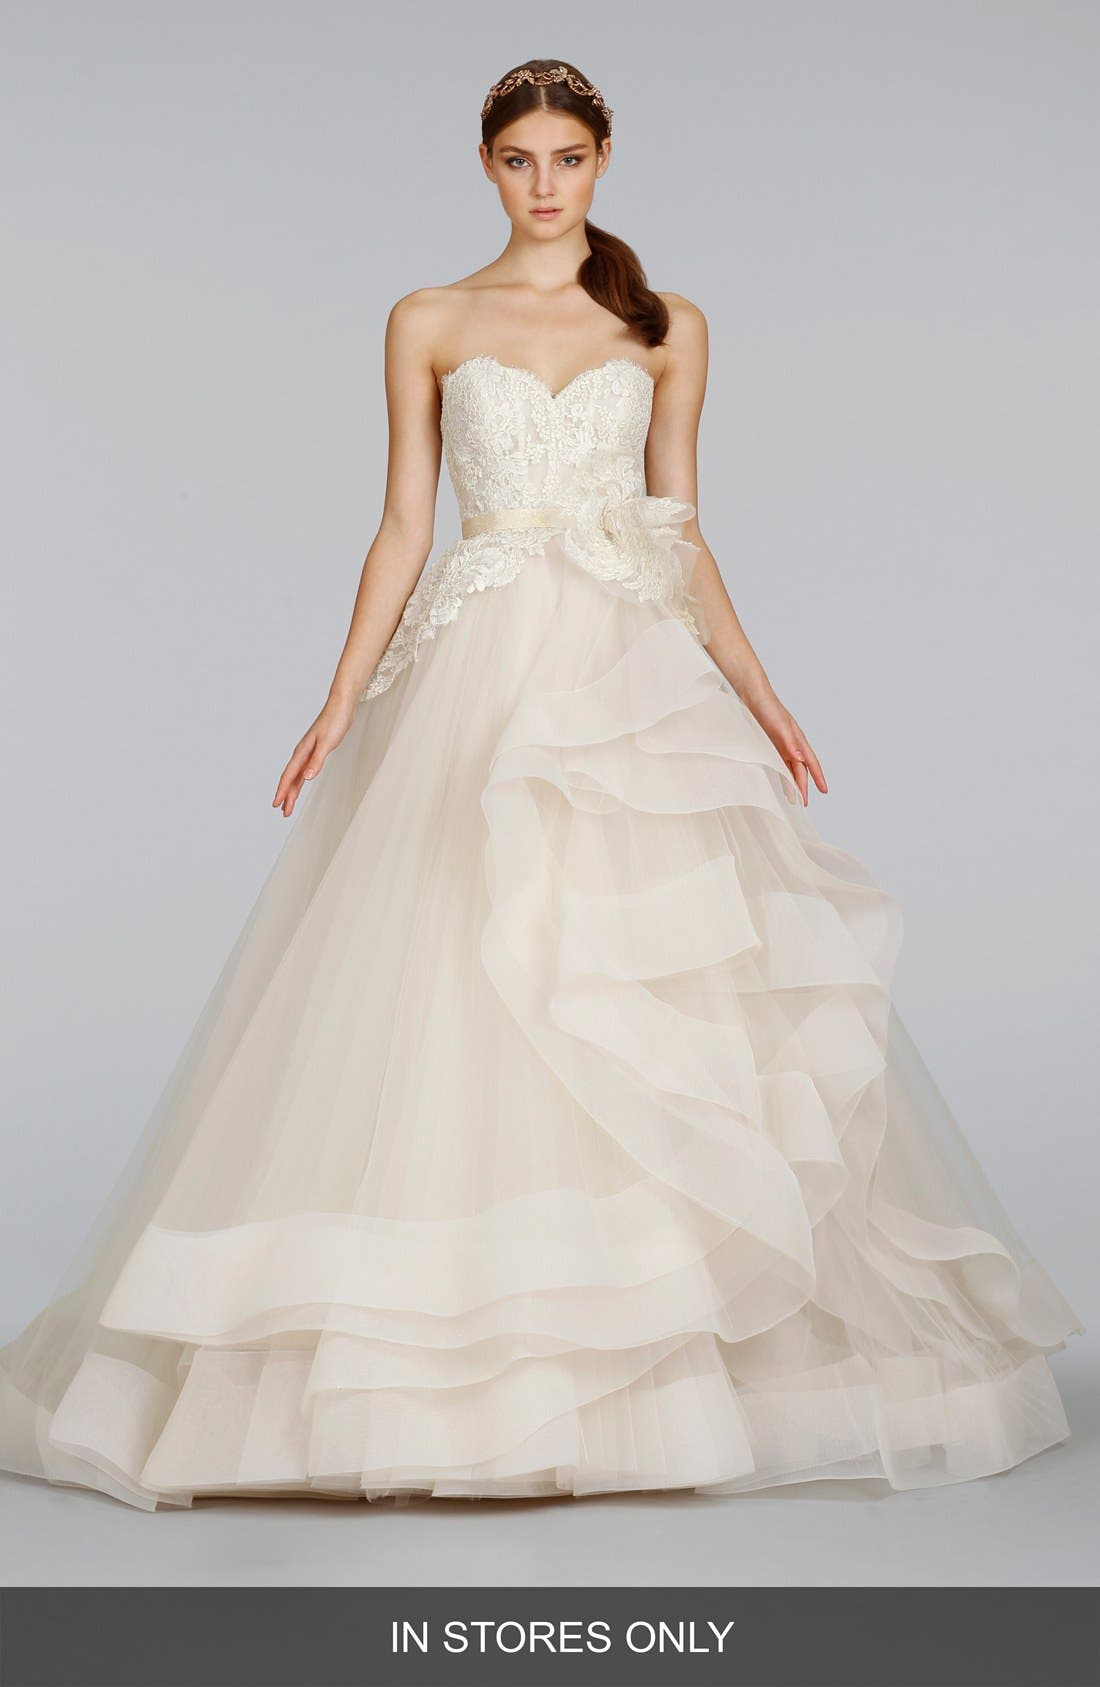 Strapless Lace & Layered Tulle Ballgown,                             Main thumbnail 1, color,                             IVORY/GOLD/CHAMPAGNE